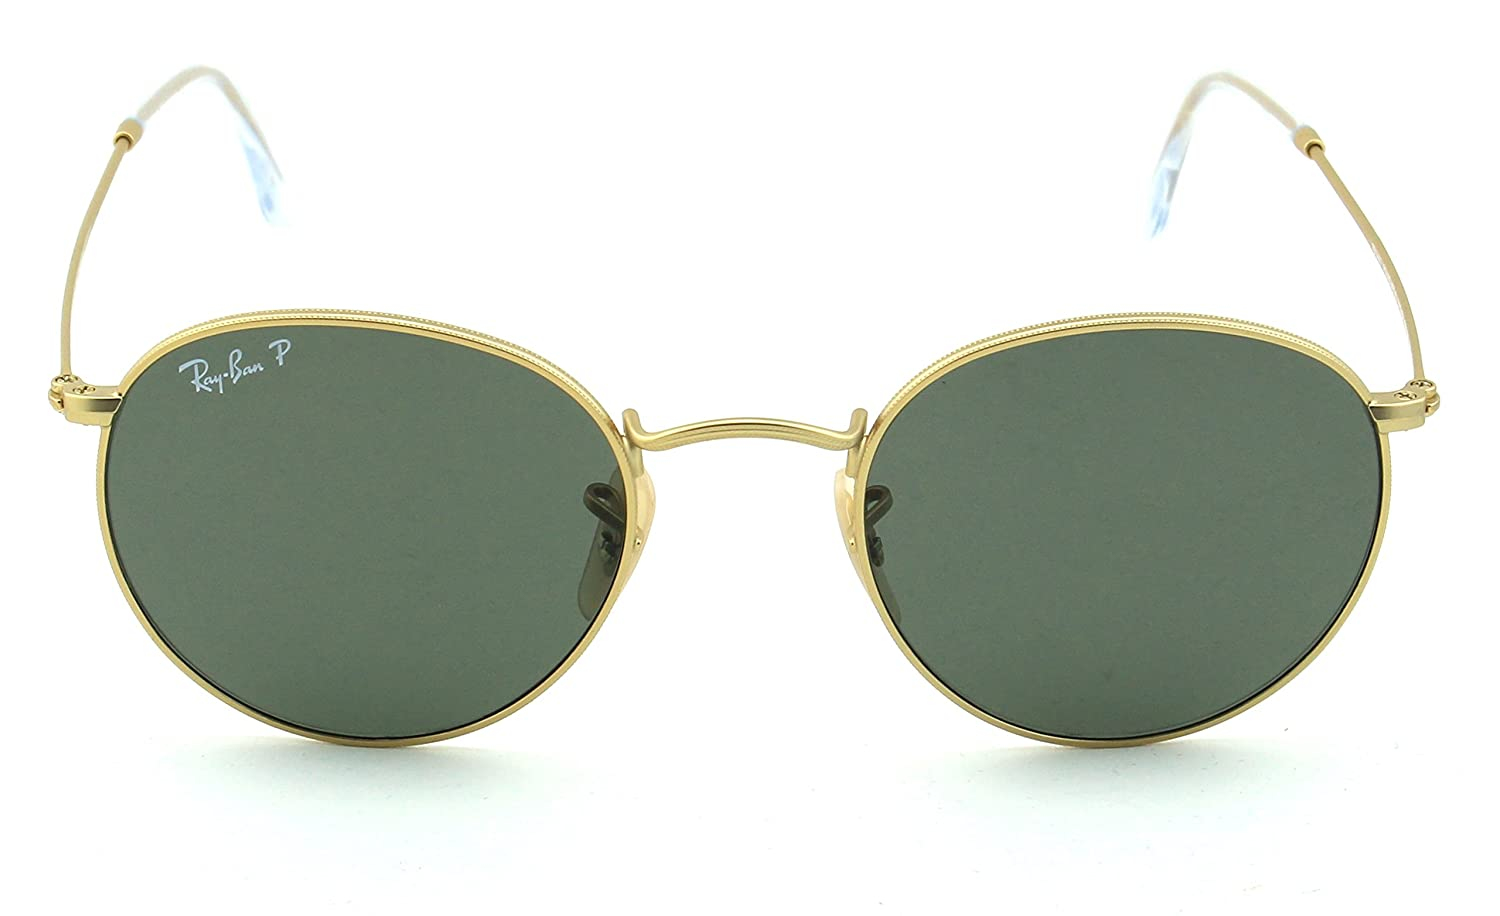 017526c2394 Amazon.com  Ray-Ban RB3447 112 58 Round Matte Gold Frame   Green Polarized  Lens 50mm  Clothing